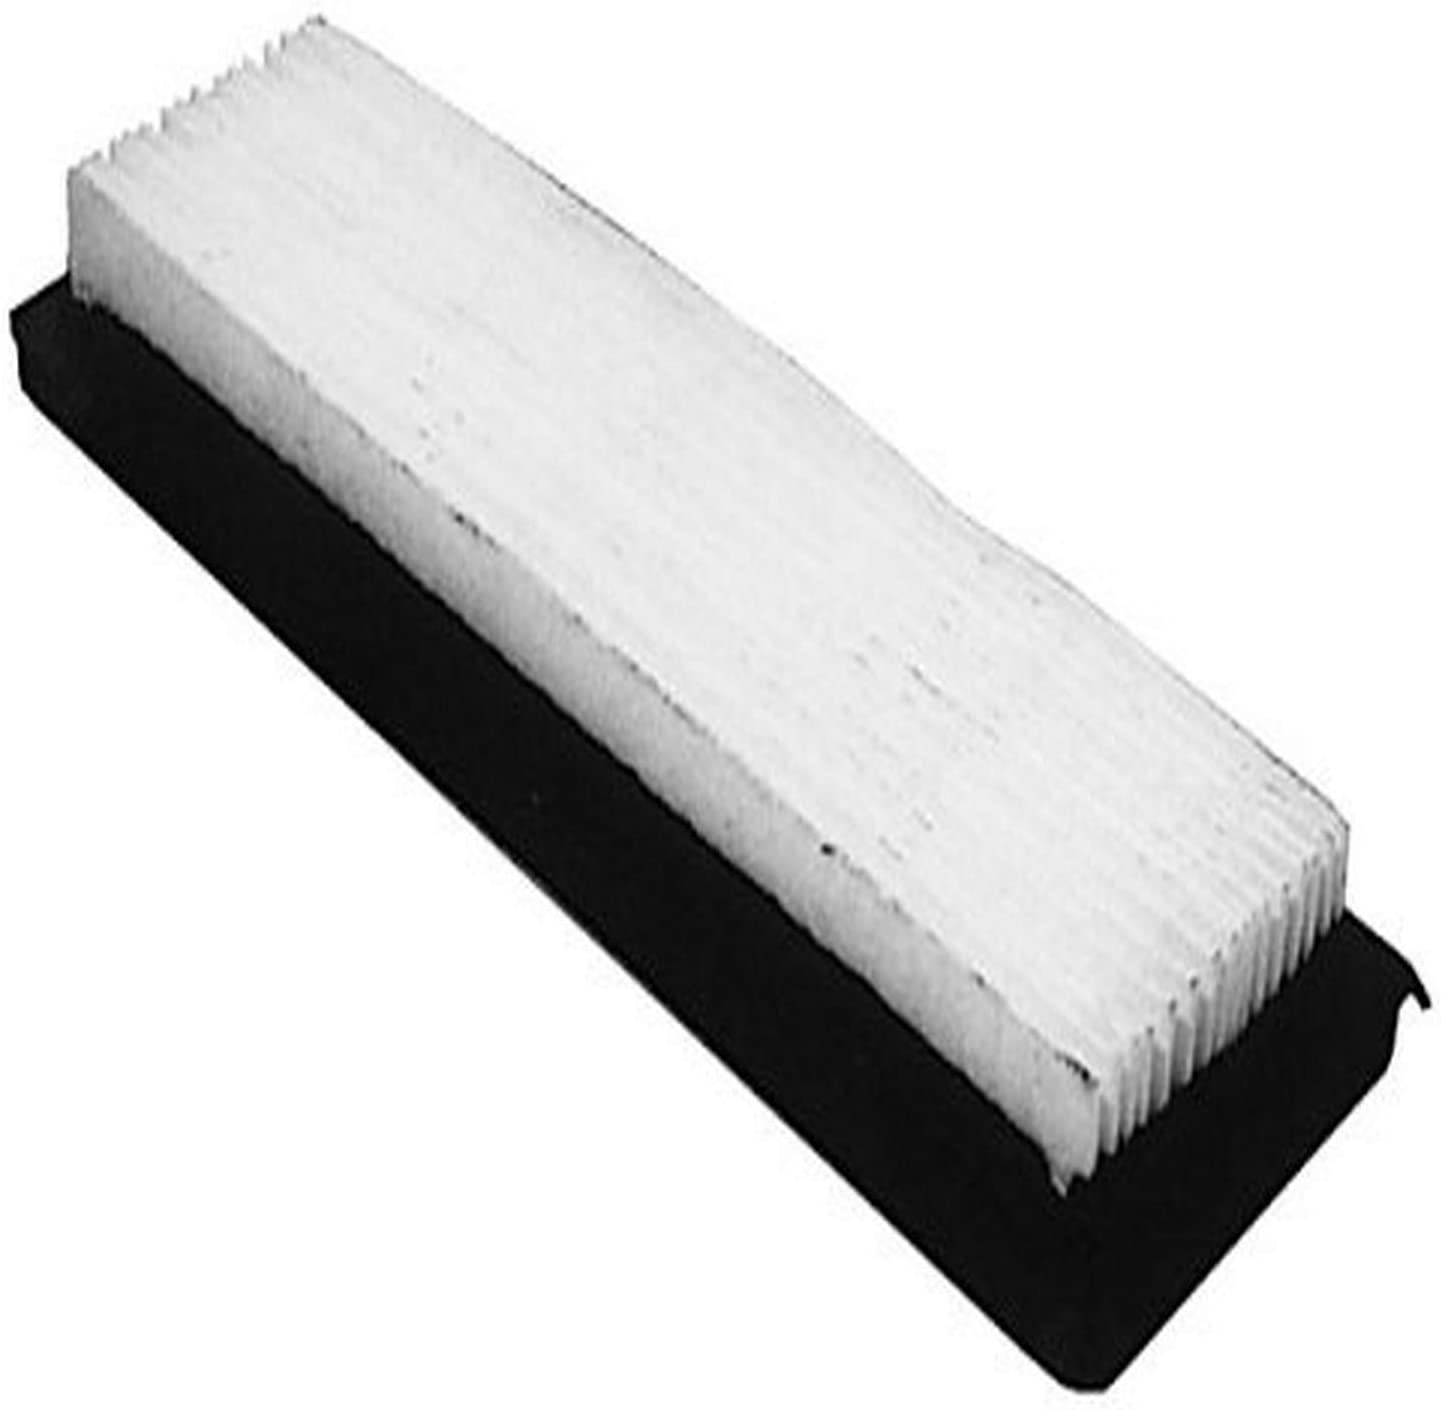 Limited time sale Oregon 30-112 Paper Air Filter 35500 Long Beach Mall Tecumseh Part 7-3 16-inches